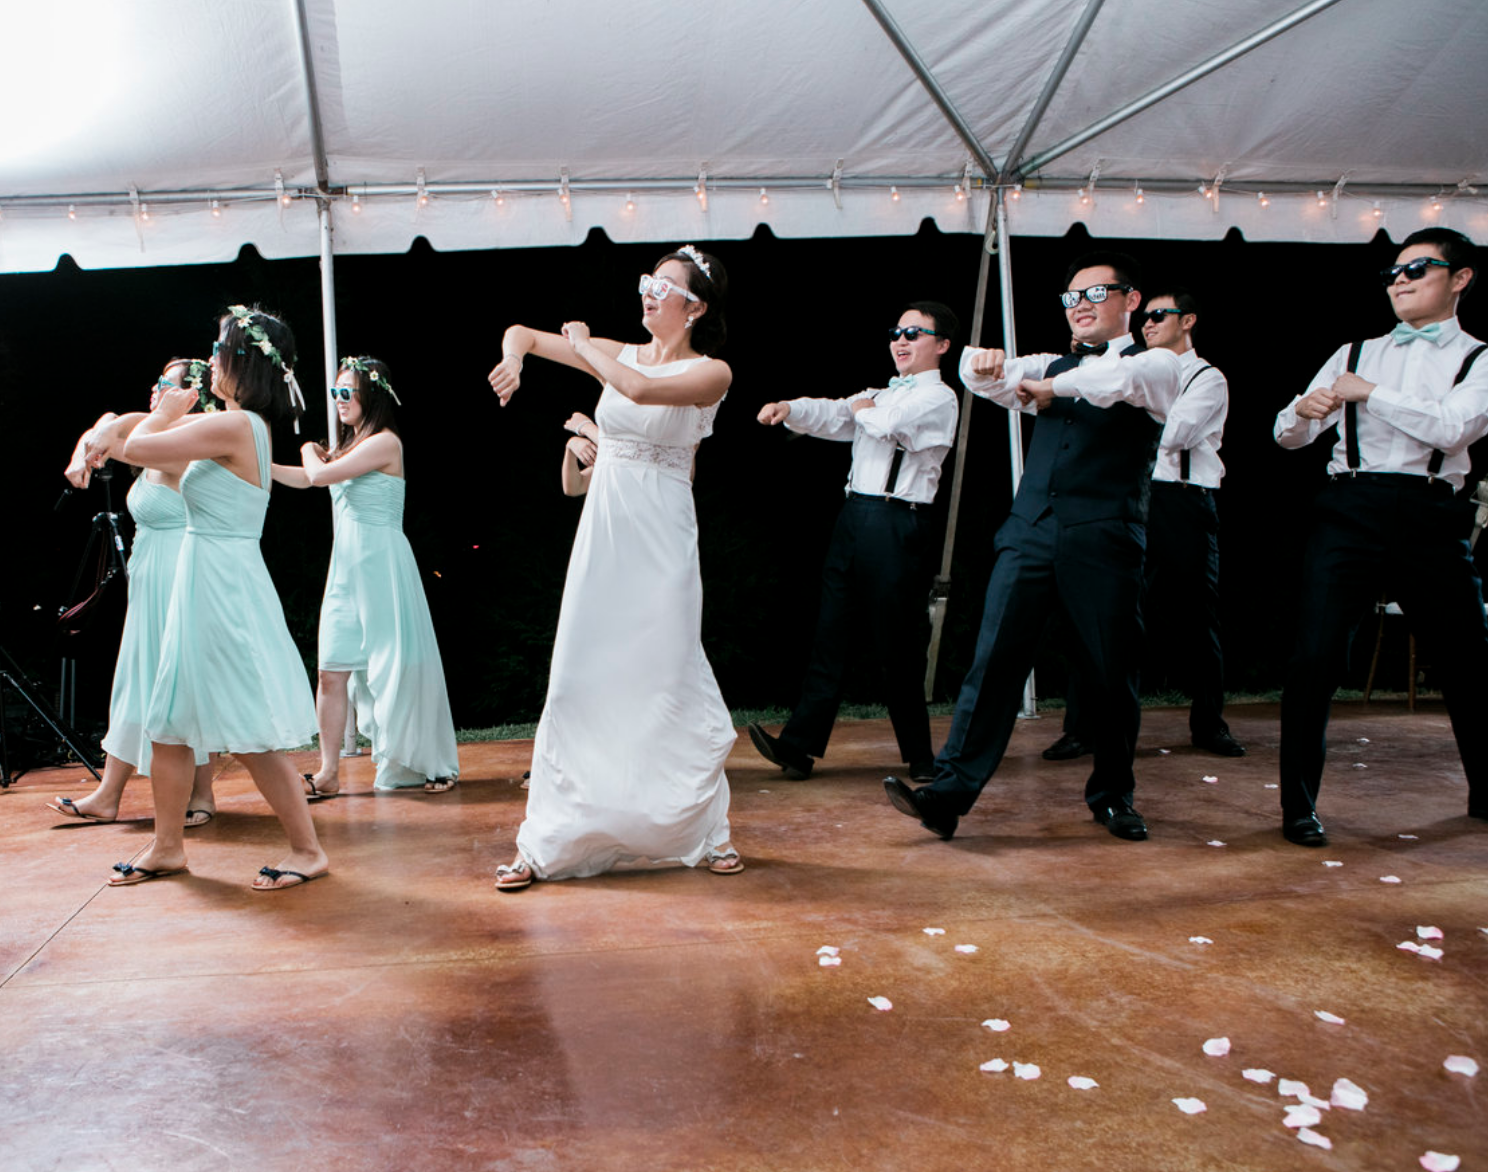 Entertain! can provide wood dance floors for weddings, and corporate events